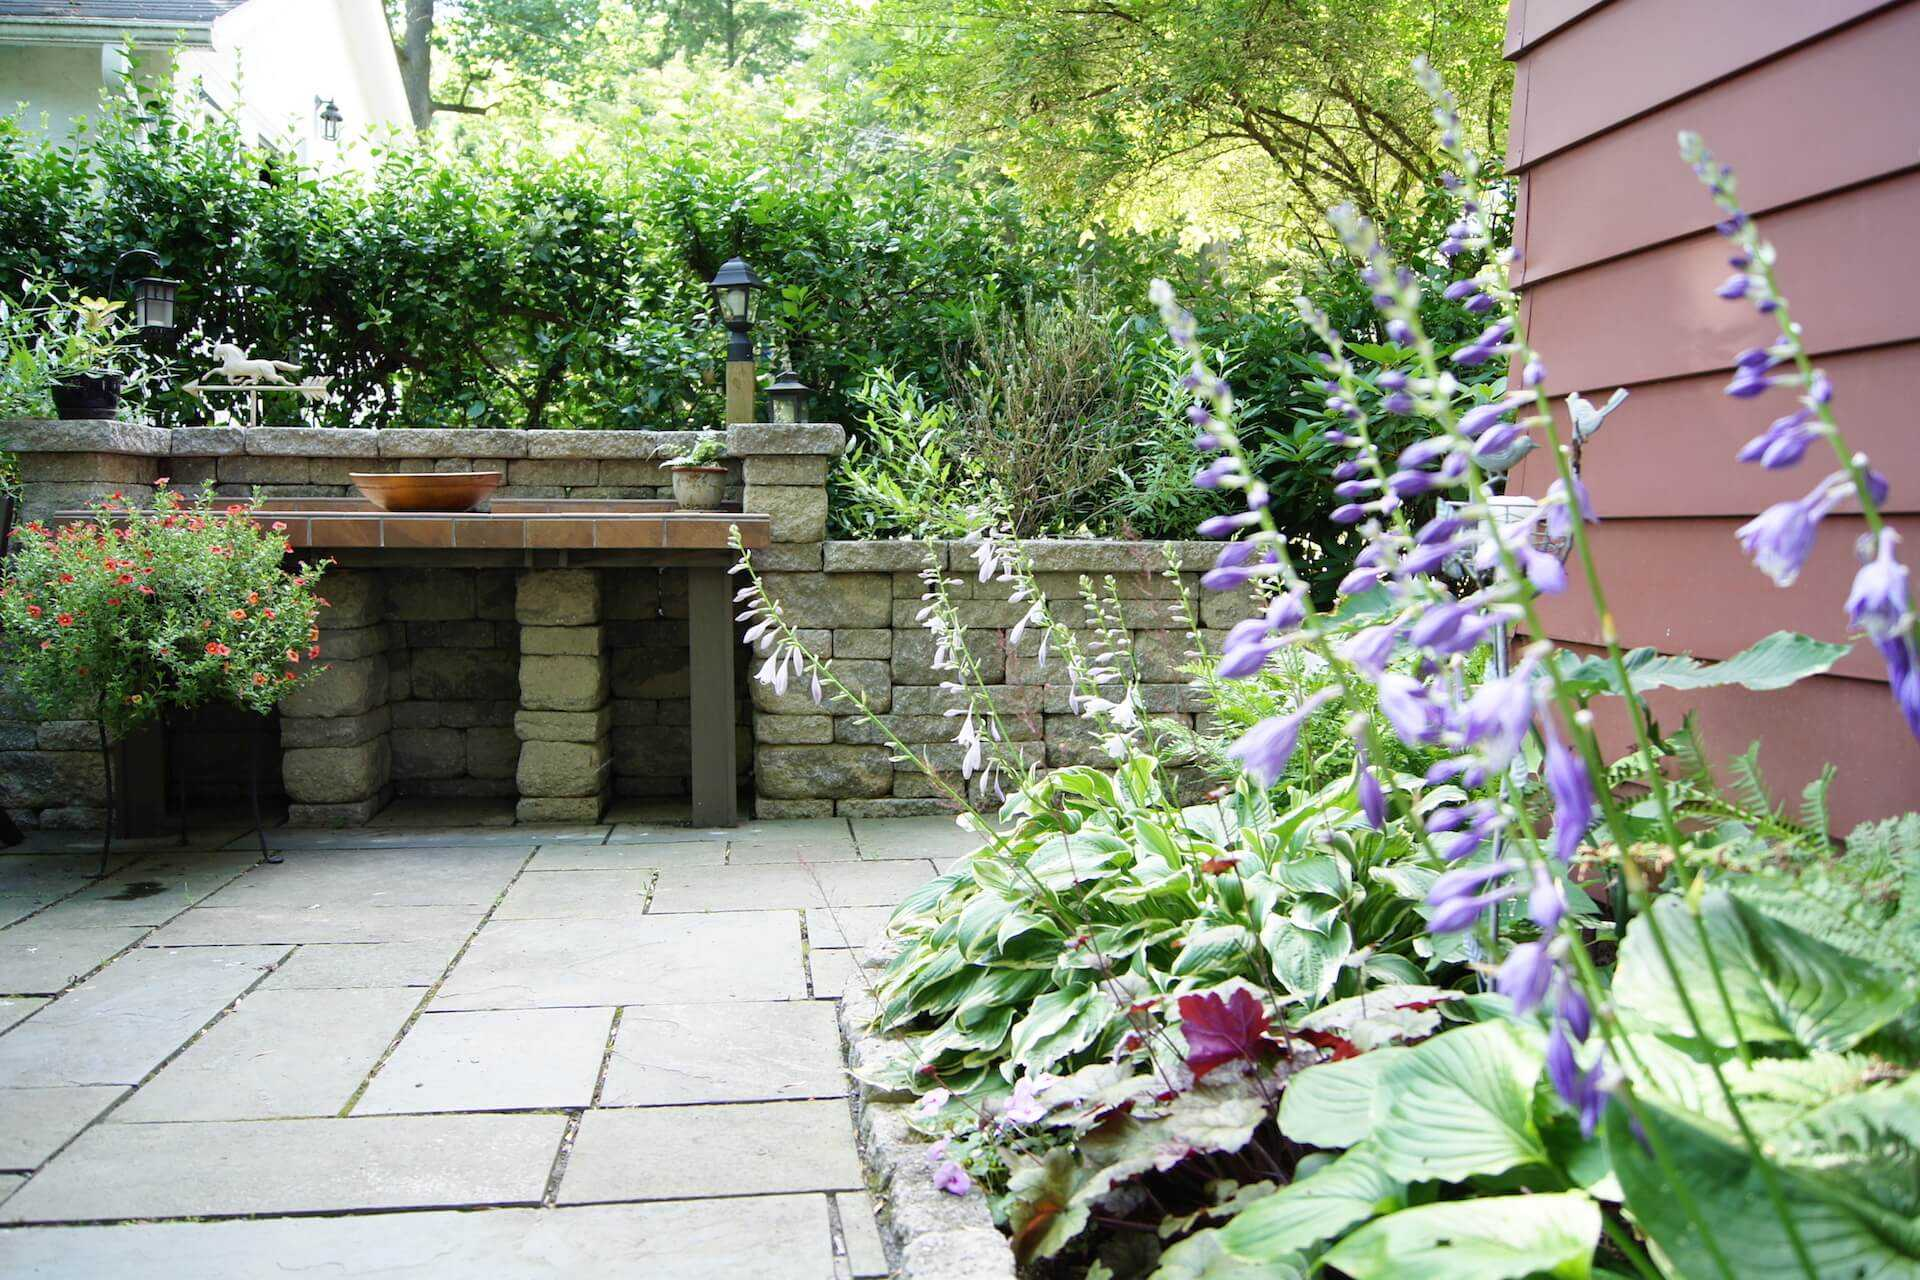 edge of flower bed facing stone table surface